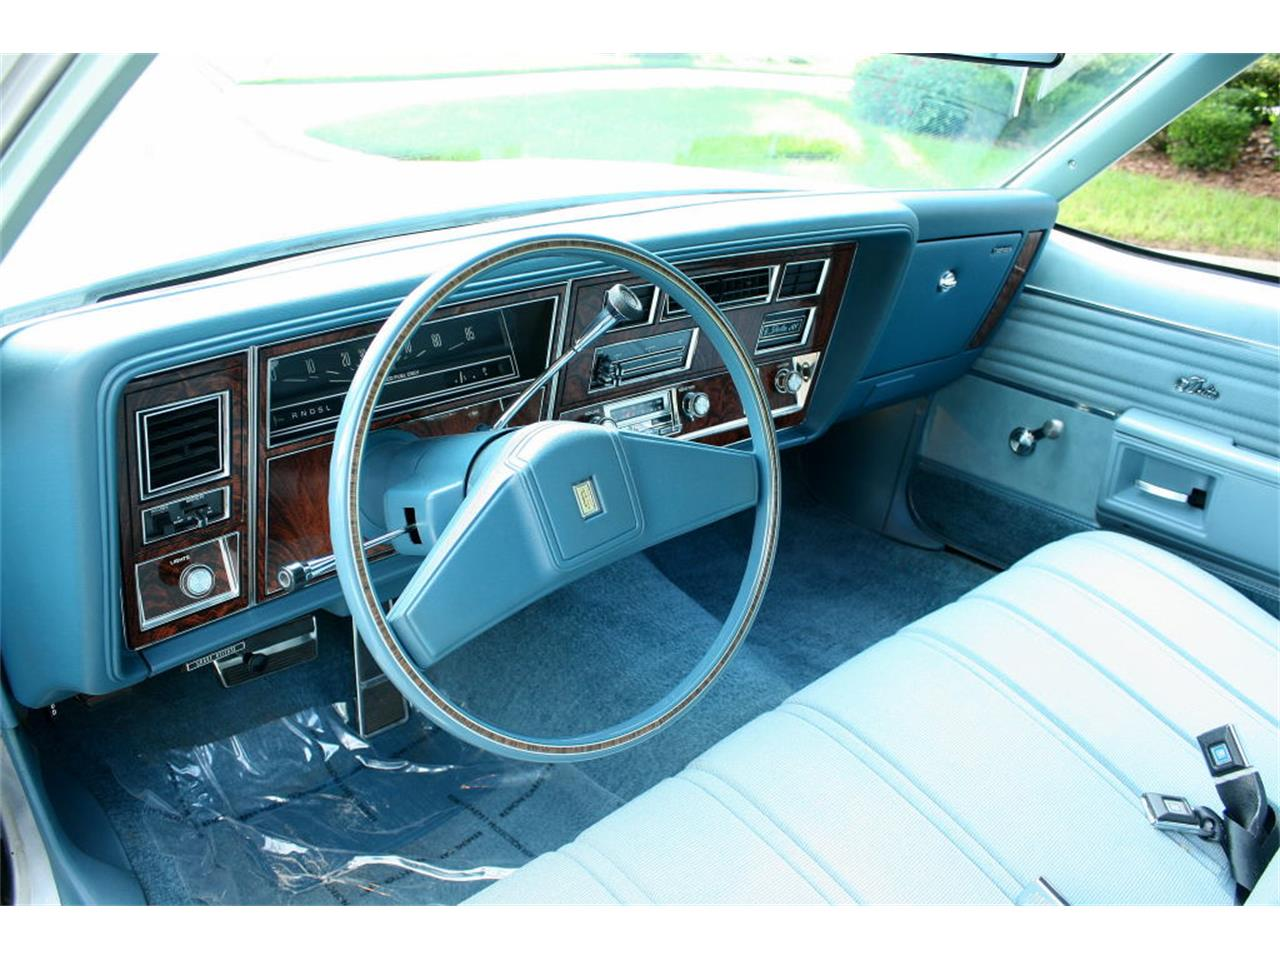 Large Picture of 1977 Oldsmobile Delta 88 located in Florida - $12,500.00 - LFEK